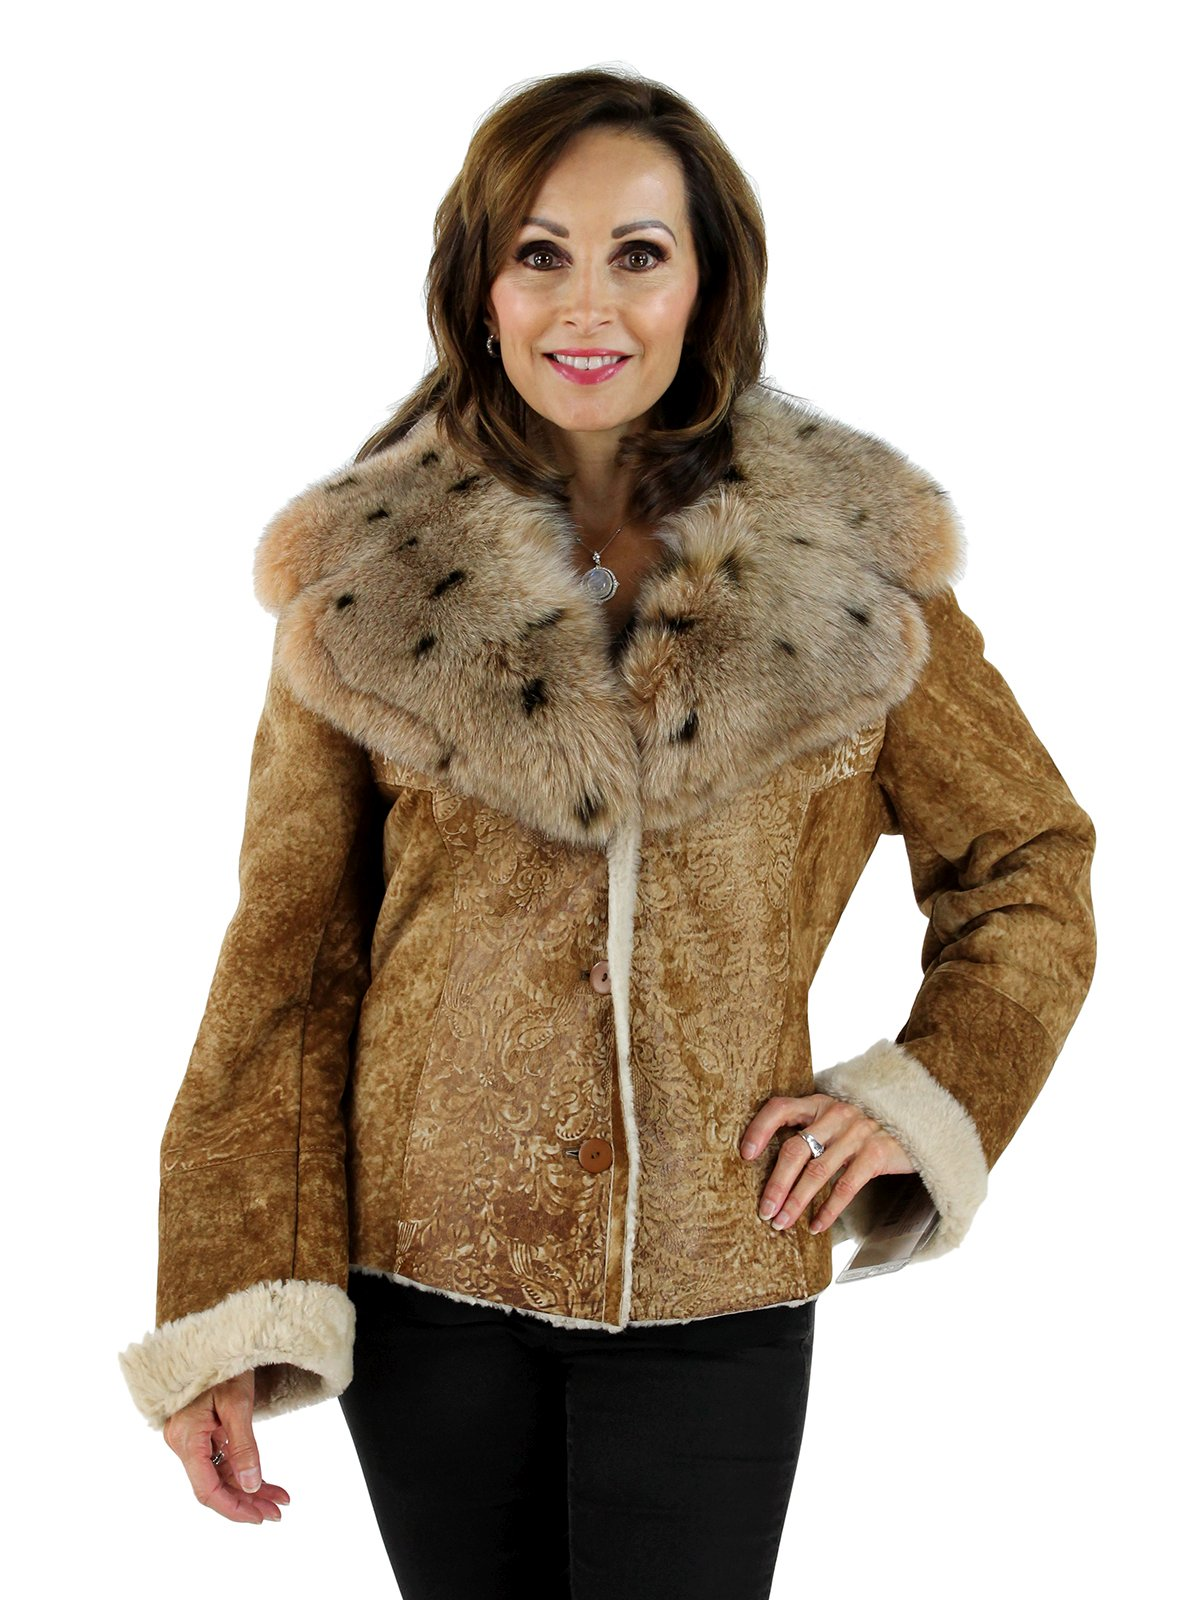 Oliveri Woman's Italian Designed Shearling Jacket